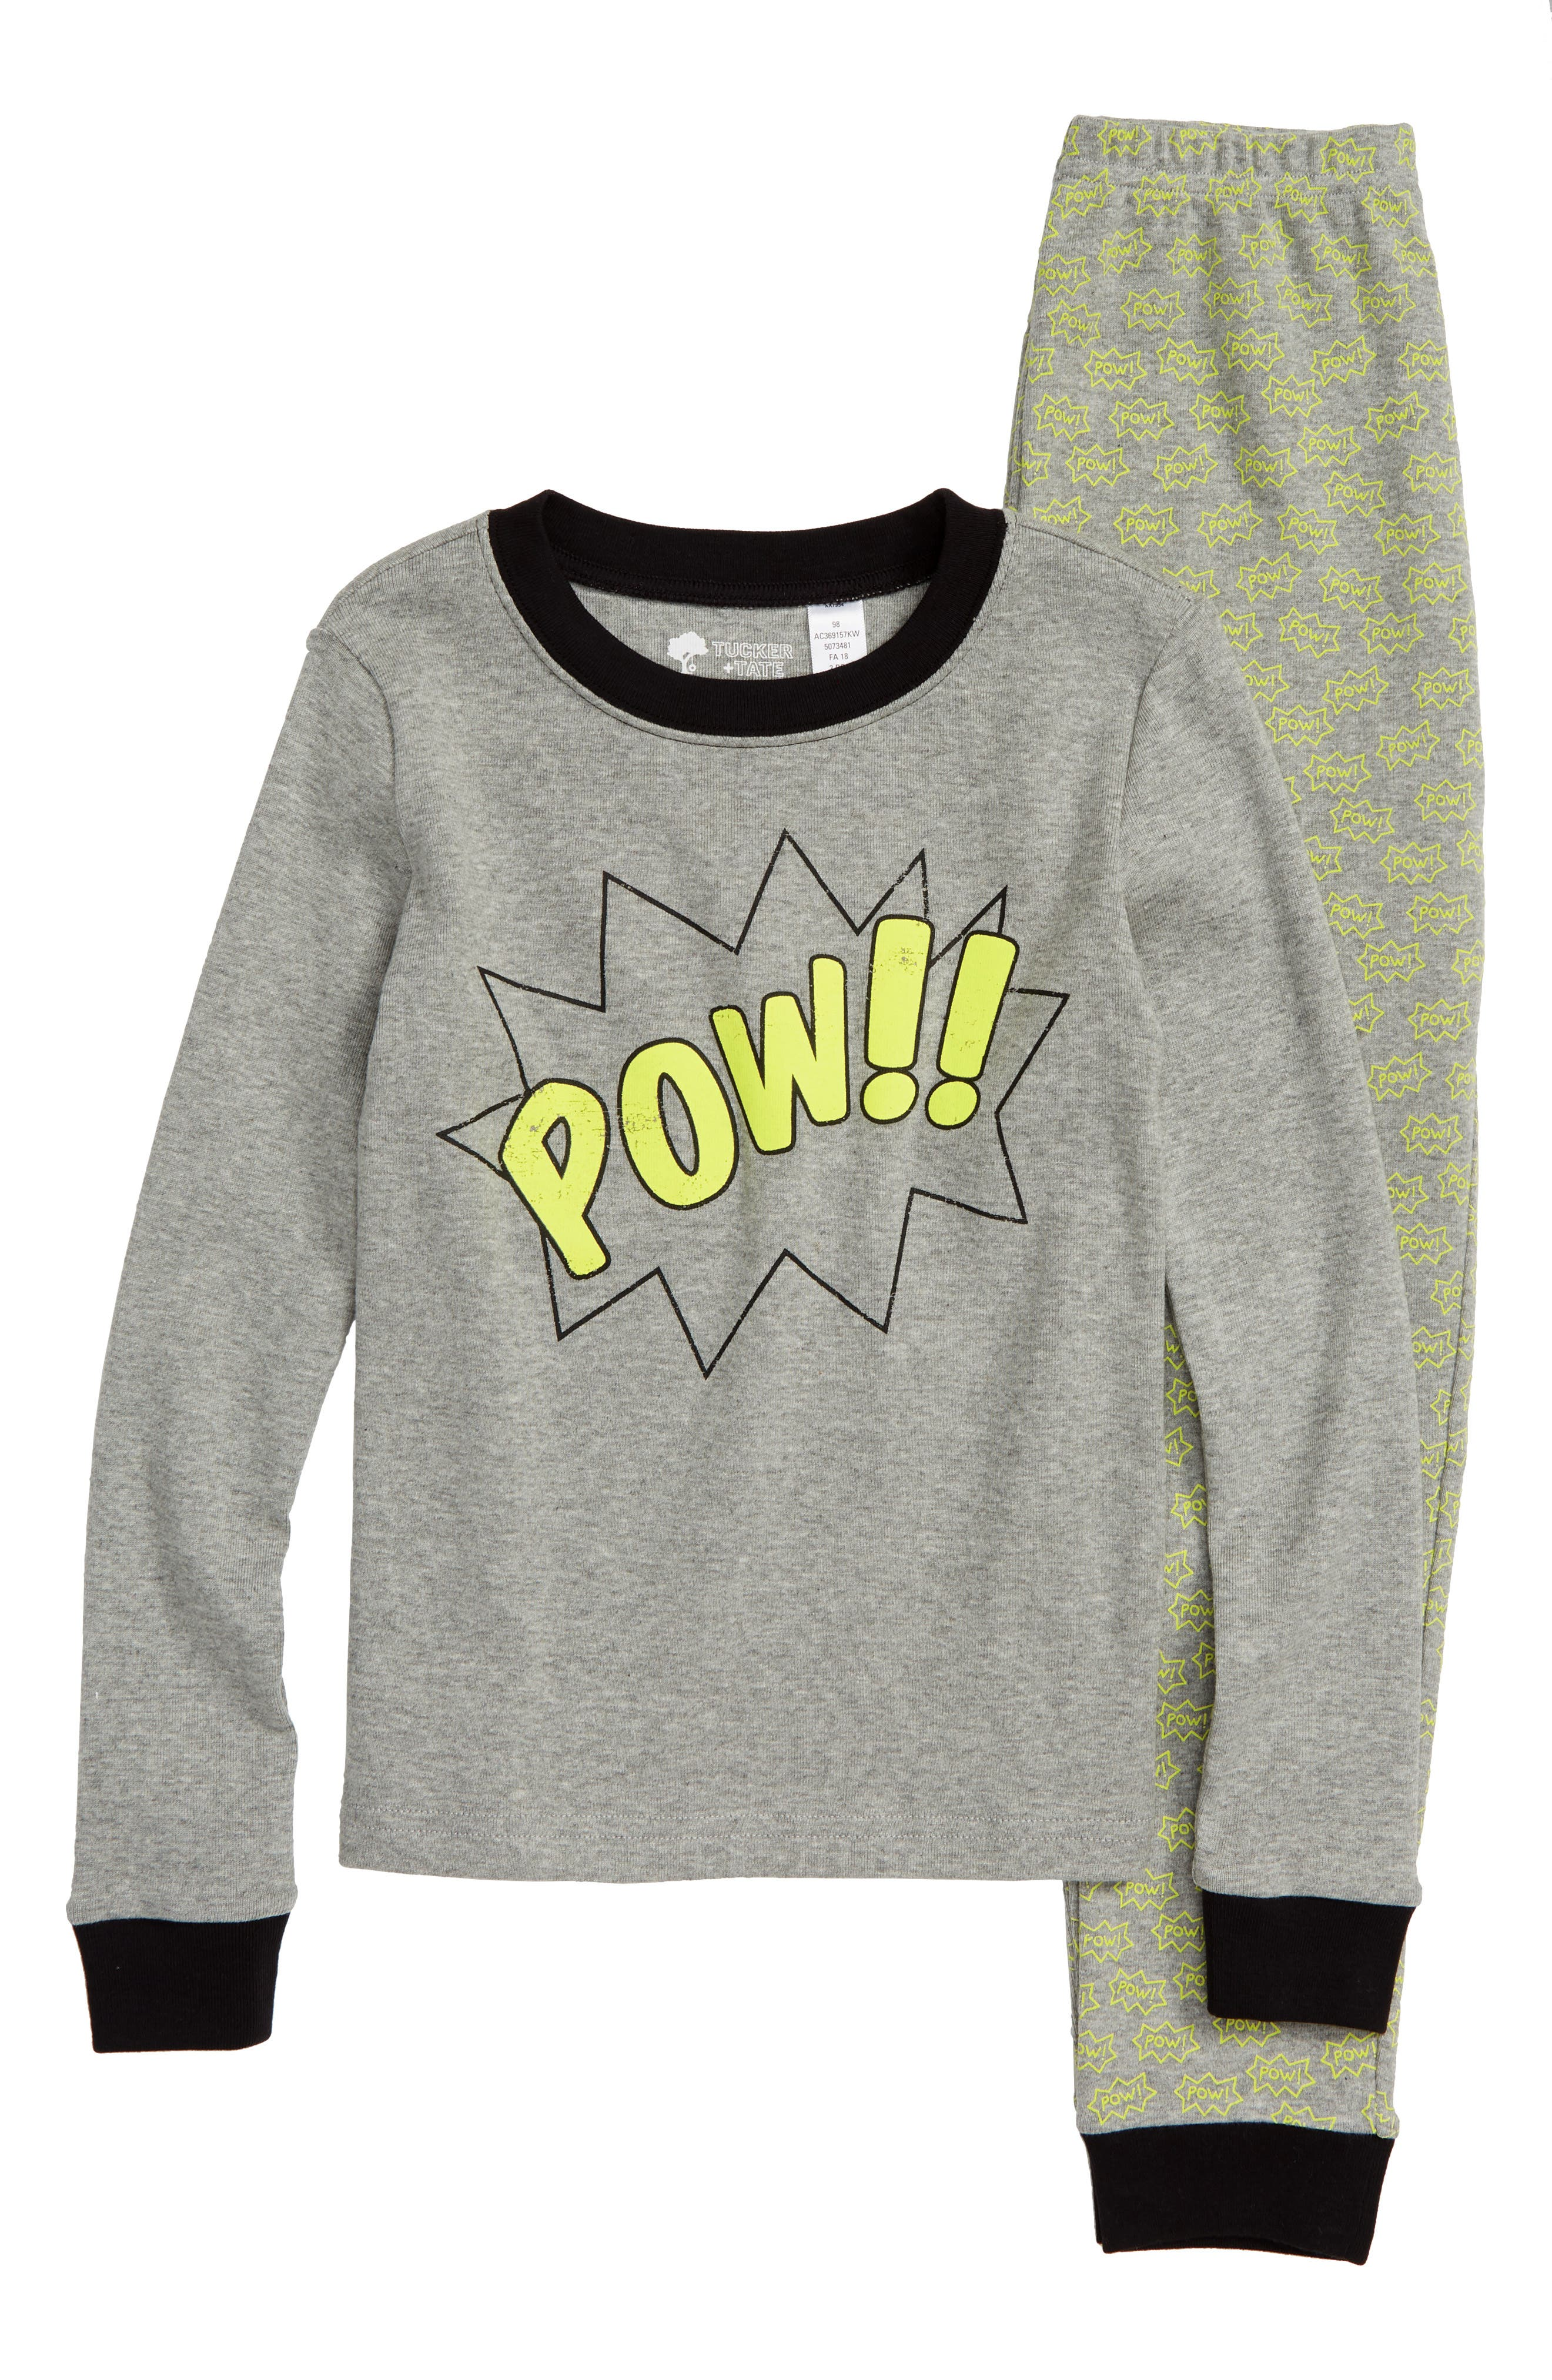 Toddler Boys Tucker  Tate Glow In The Dark TwoPiece Fitted Pajamas Size 3T  Grey